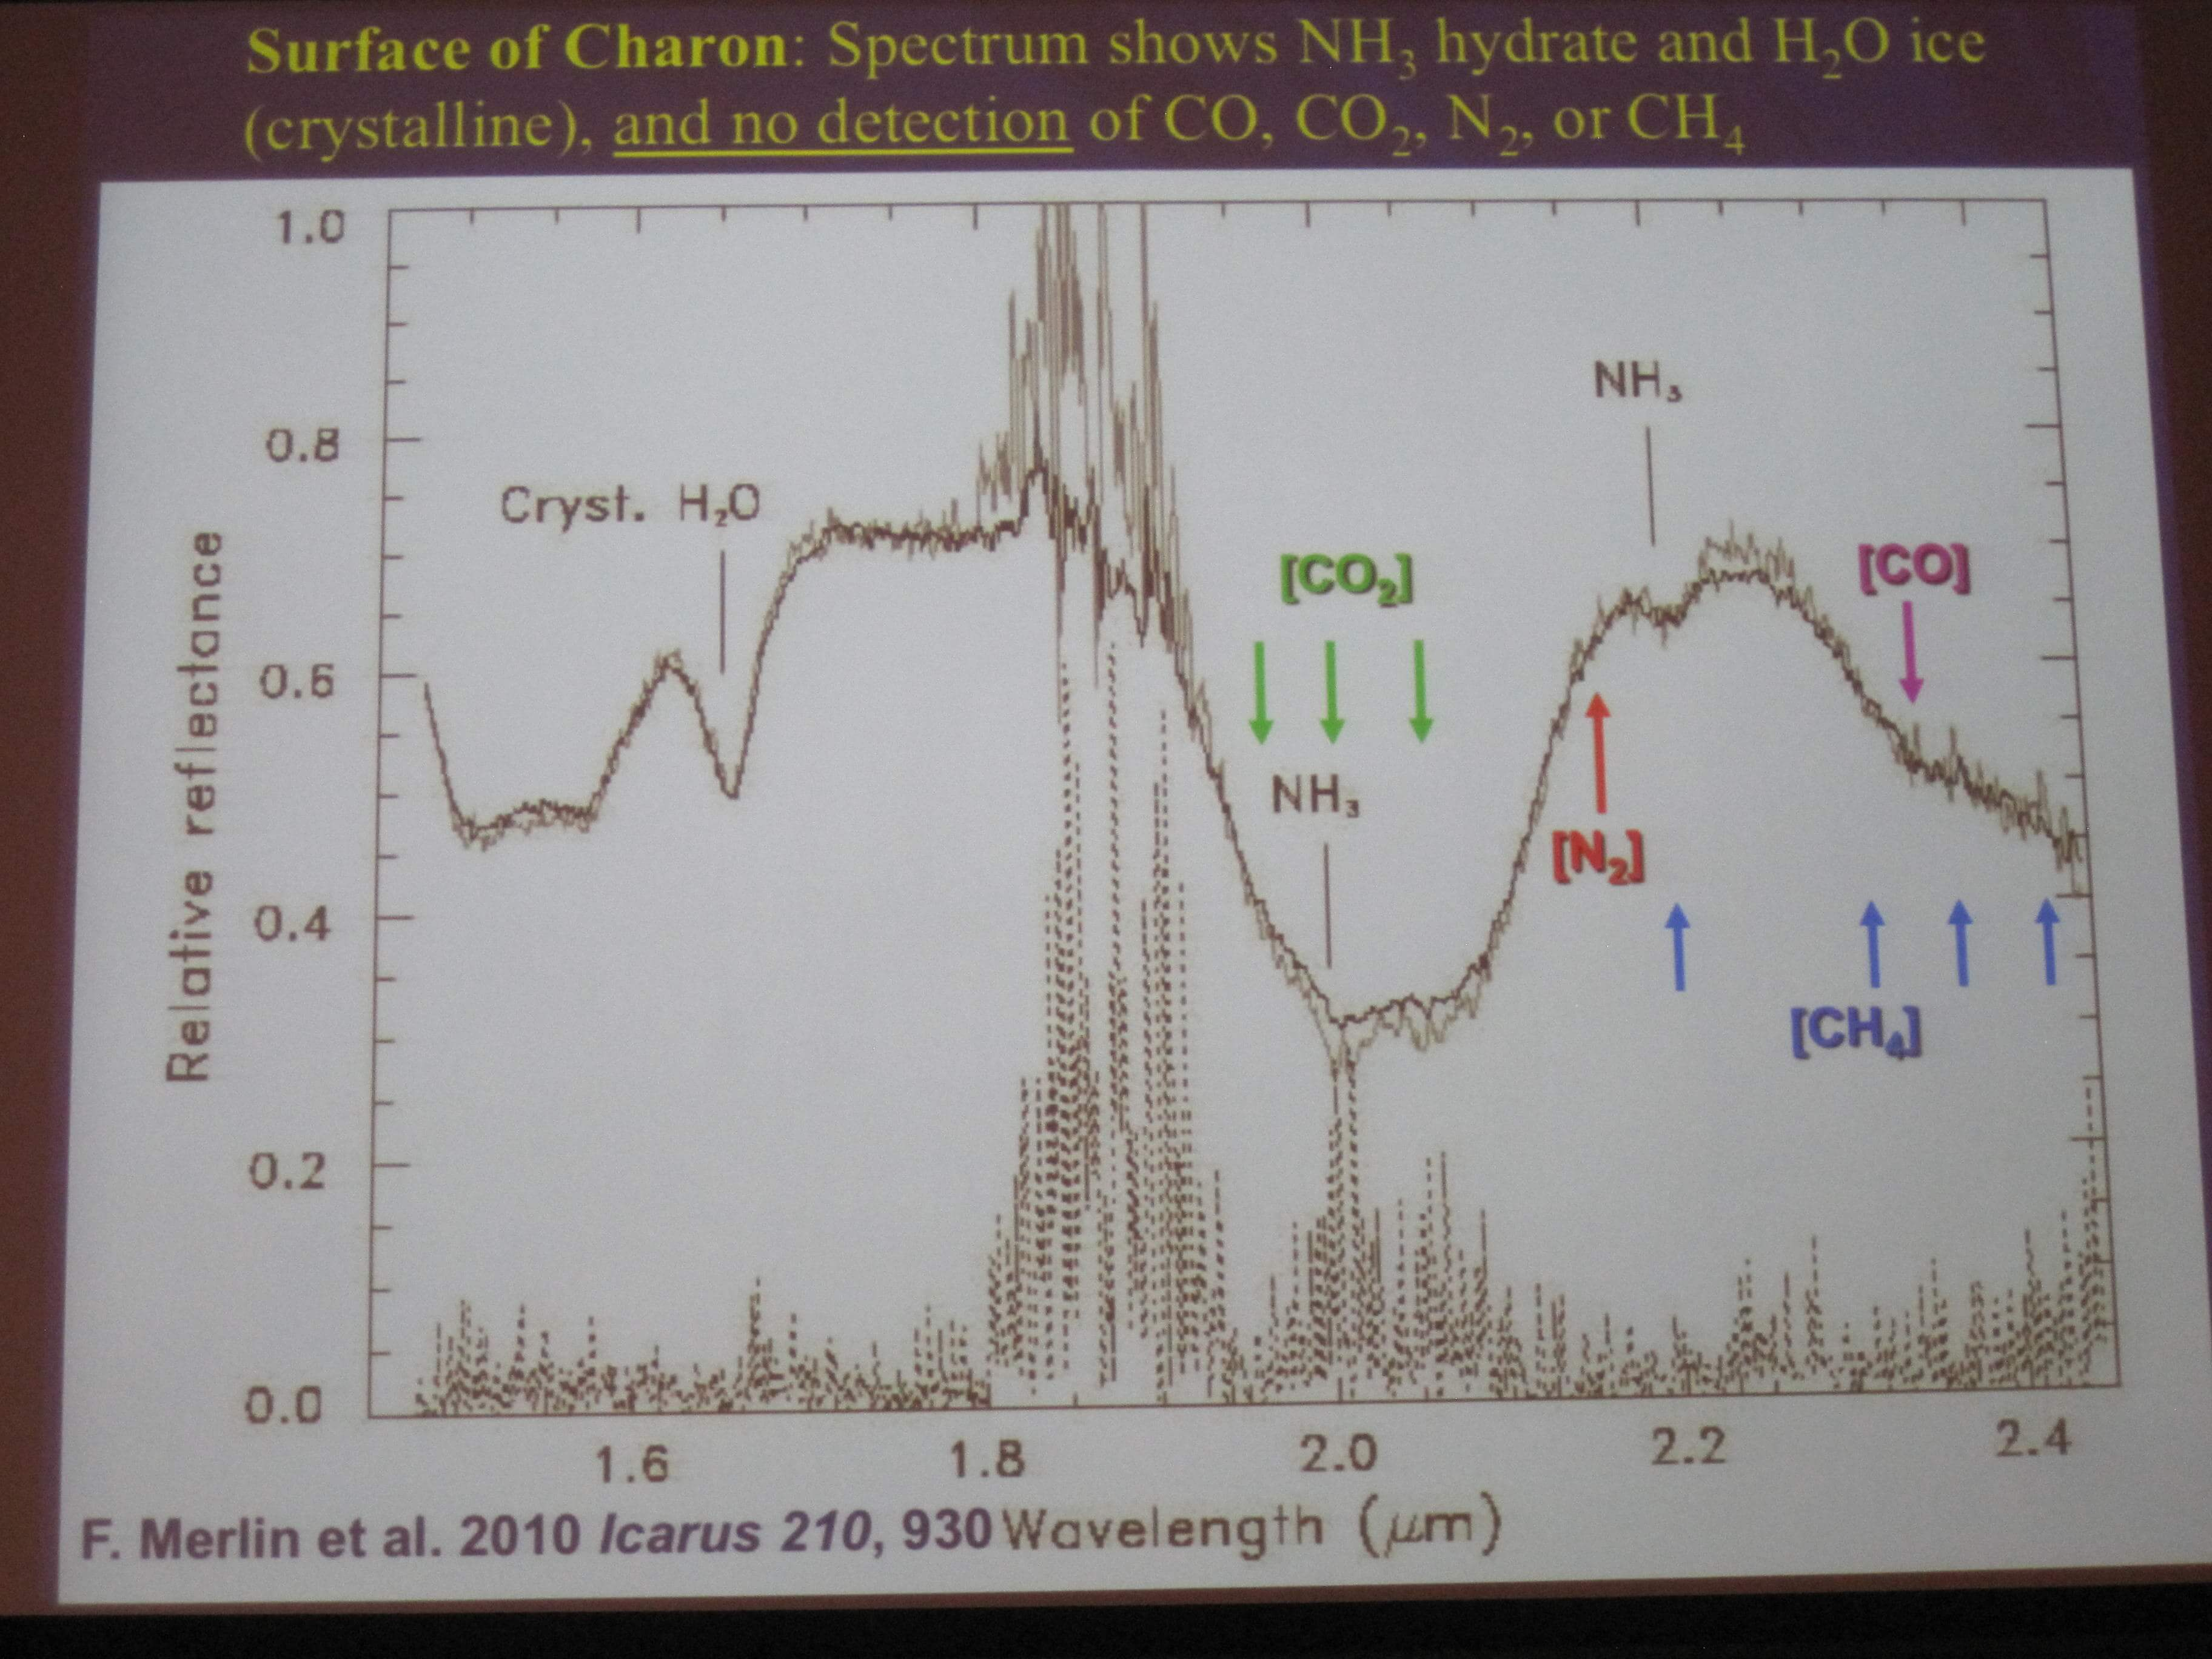 Pluto Dr Kimberly Ennico Smith Page 3 Hydra Biology Diagram Phenomenon Of Science Chap 1 Predictions For New Horizons It Will Be Hard To Find Hcn With Leisa Due Its Spectral Resolution As There Is A Strong Methane Band Nearby